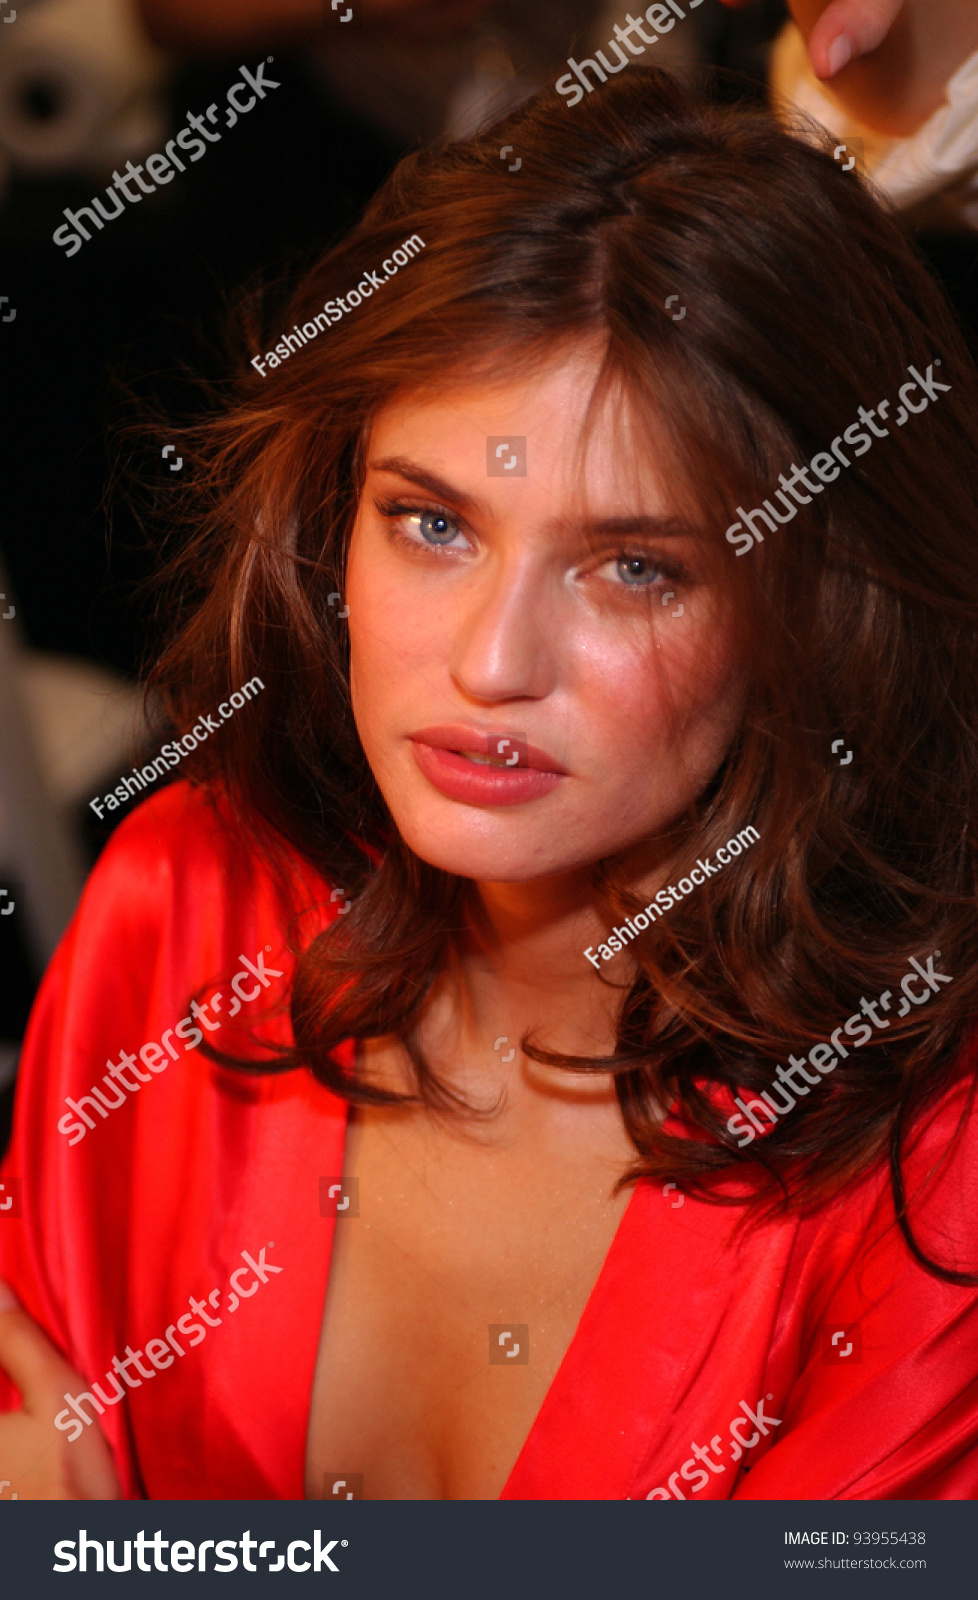 Bianca Balti ITA 	1 	2005 Bianca Balti ITA 	1 	2005 new photo